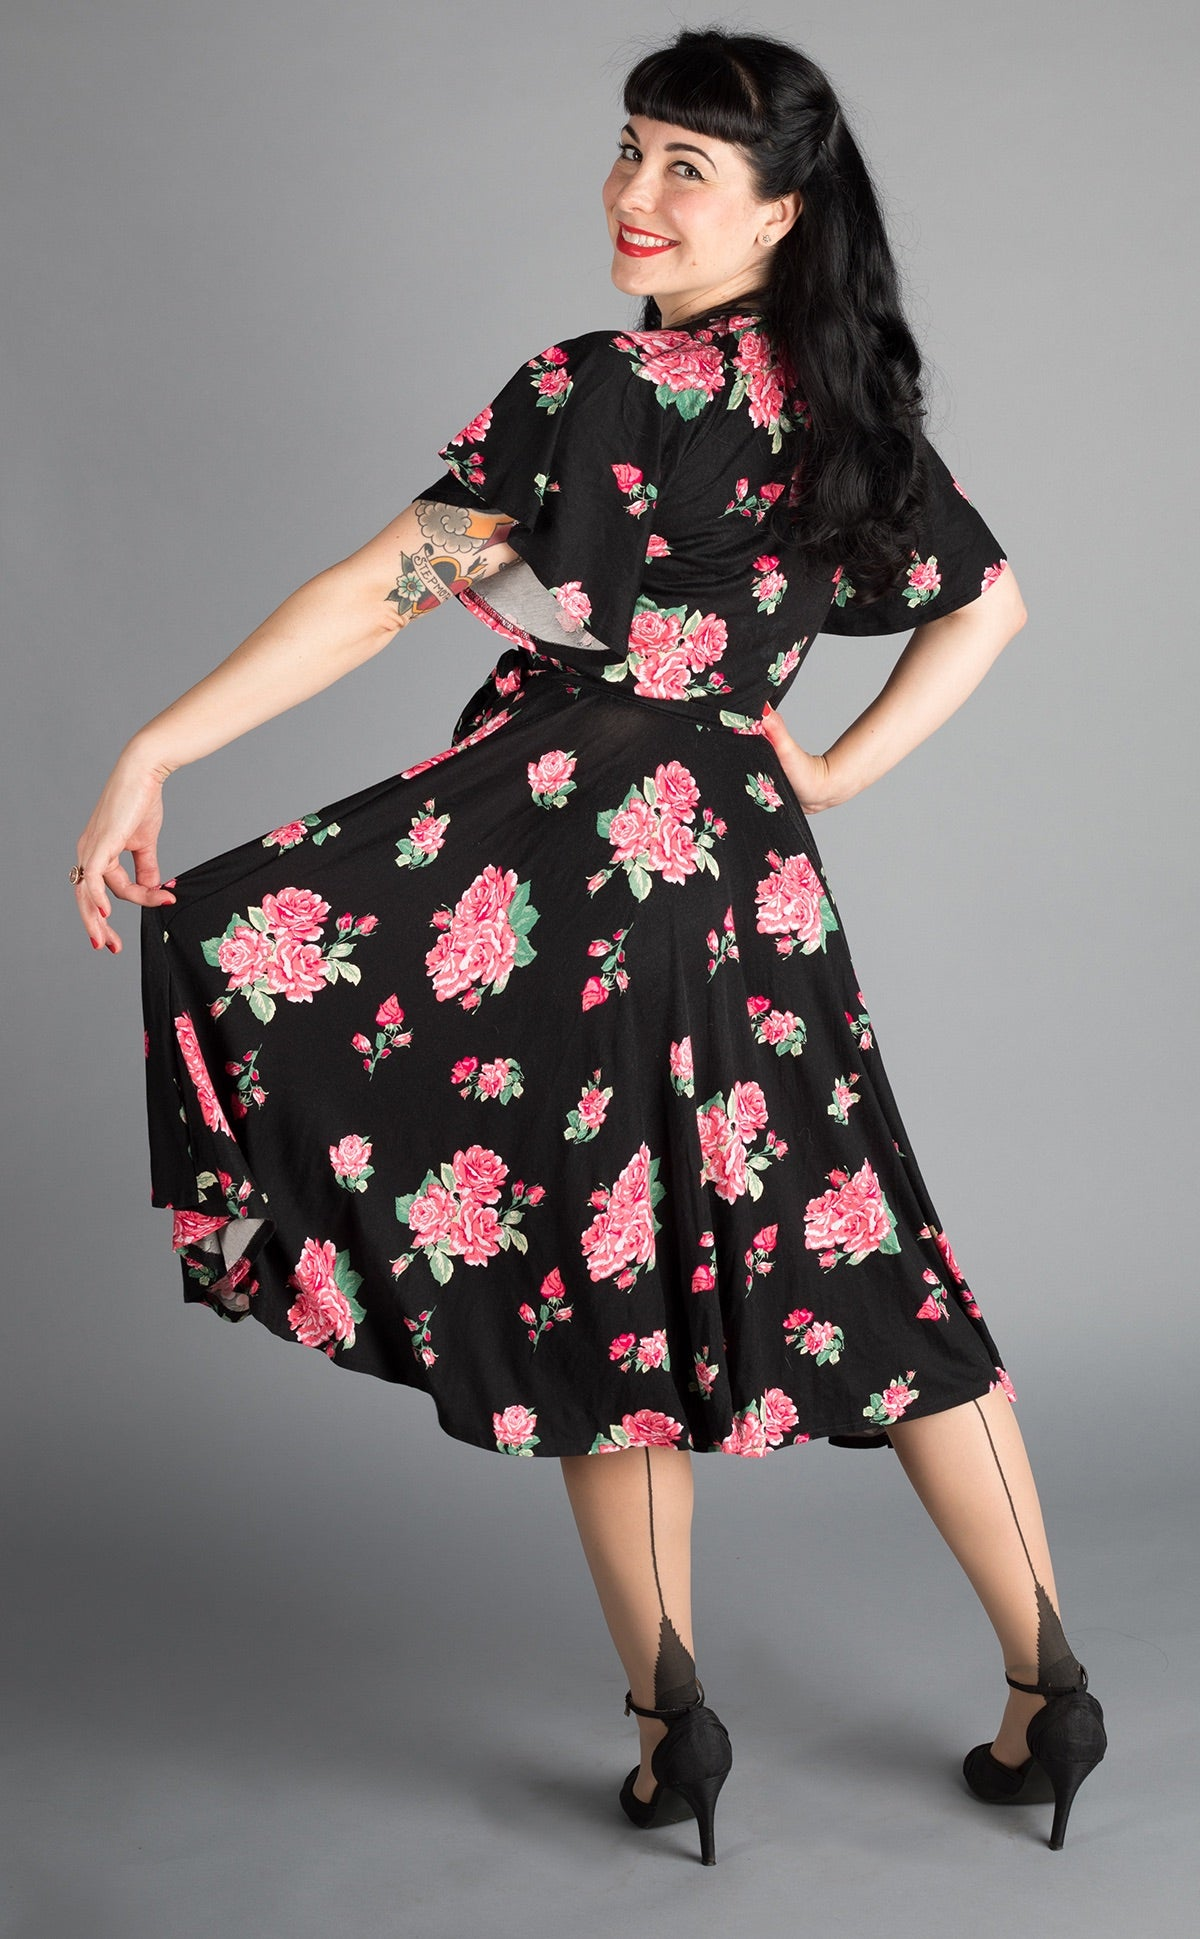 Pink Bouquet Aurora Dress by Wax Poetic